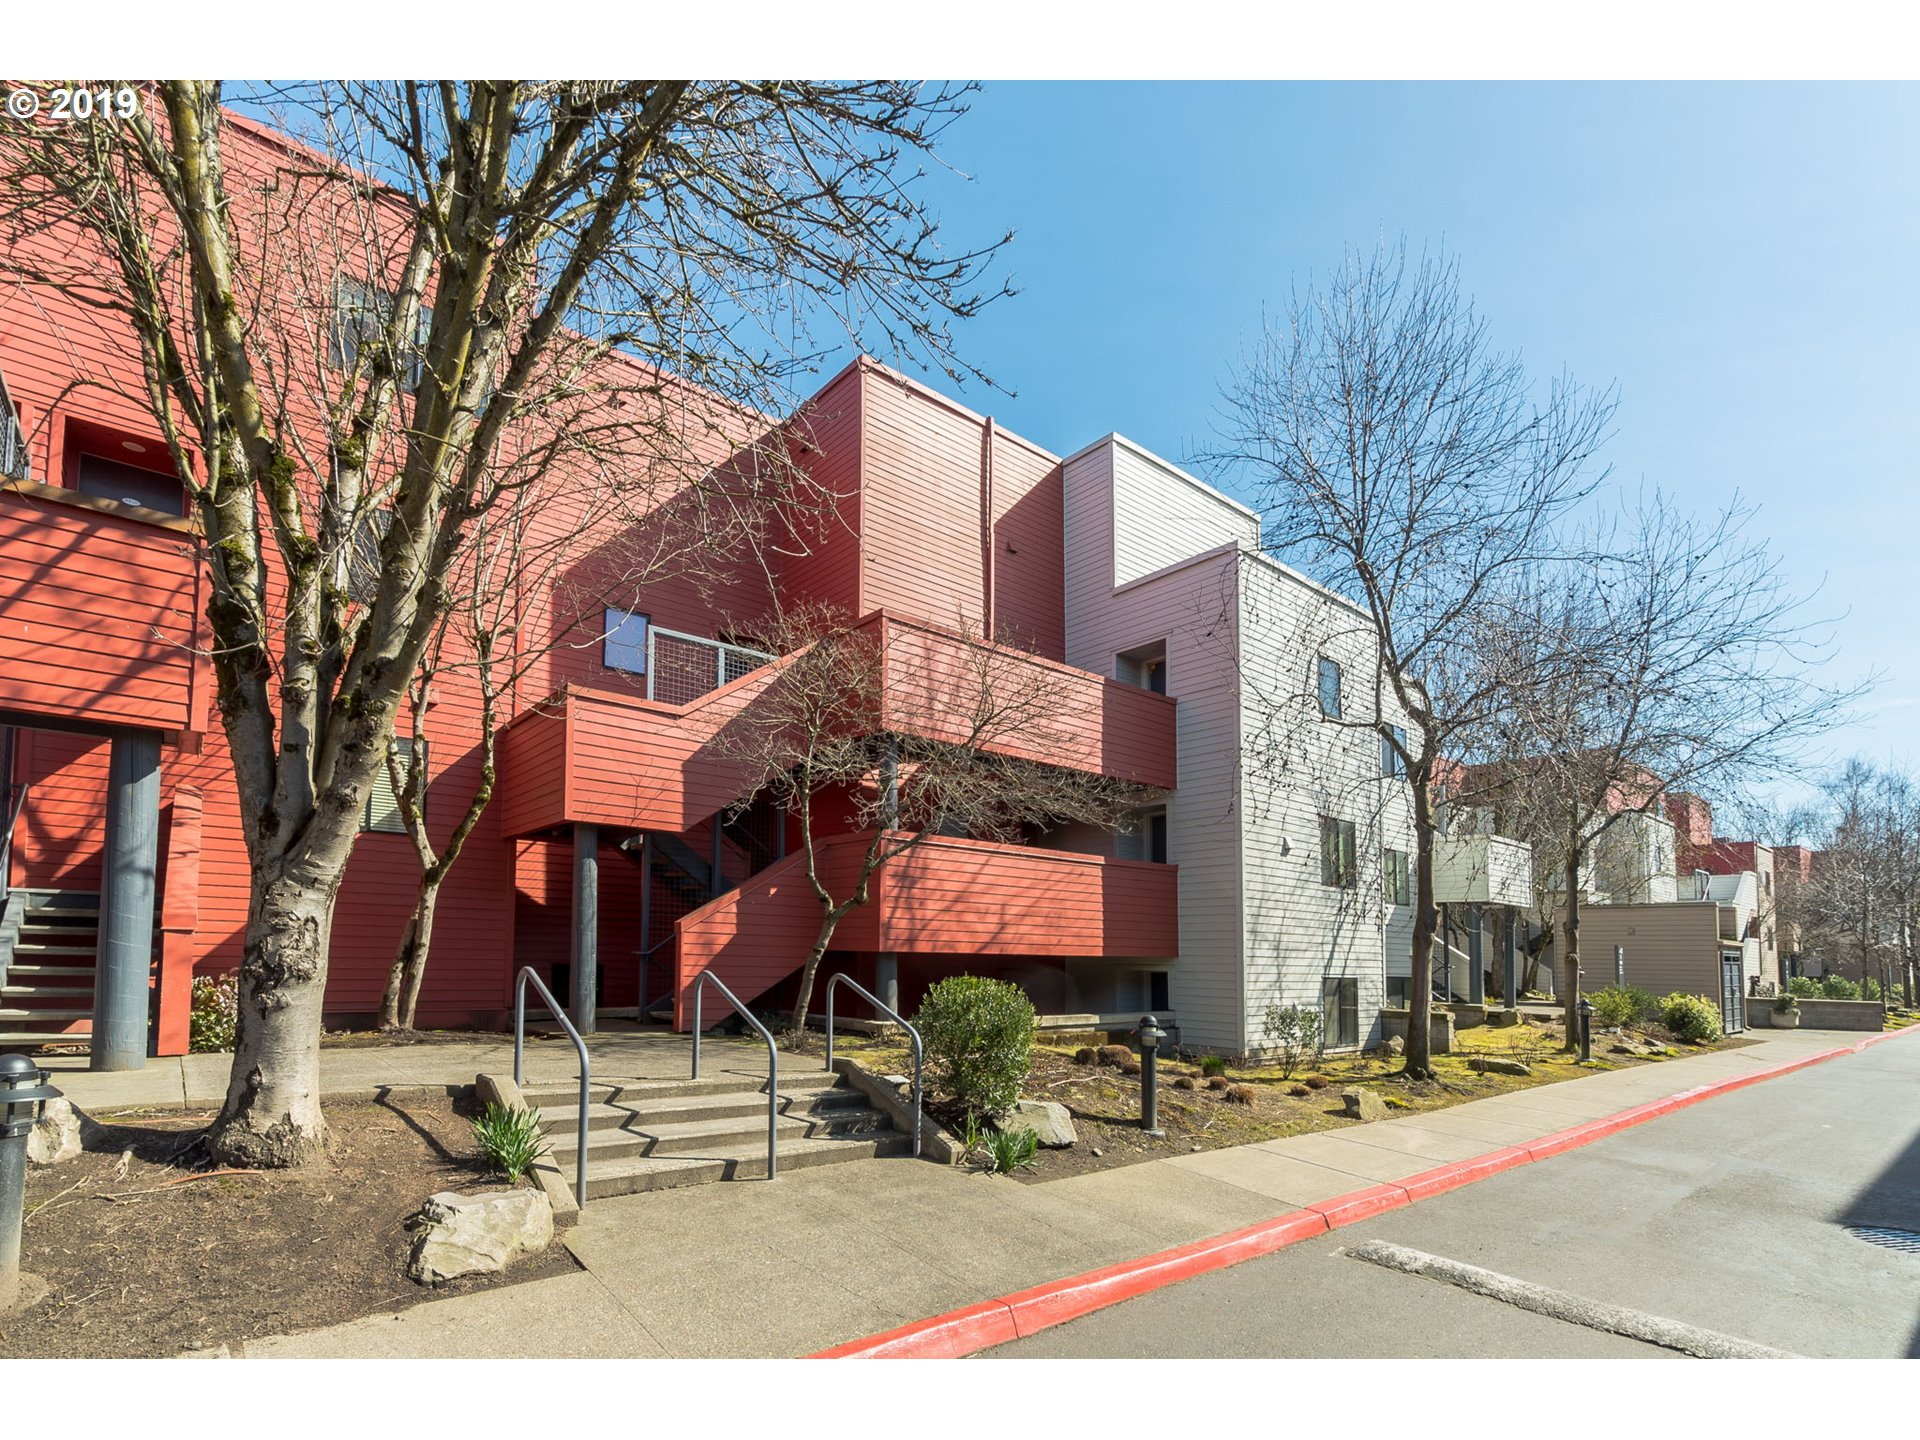 1100 sq. ft 2 bedrooms 2 bathrooms  House ,Portland, OR